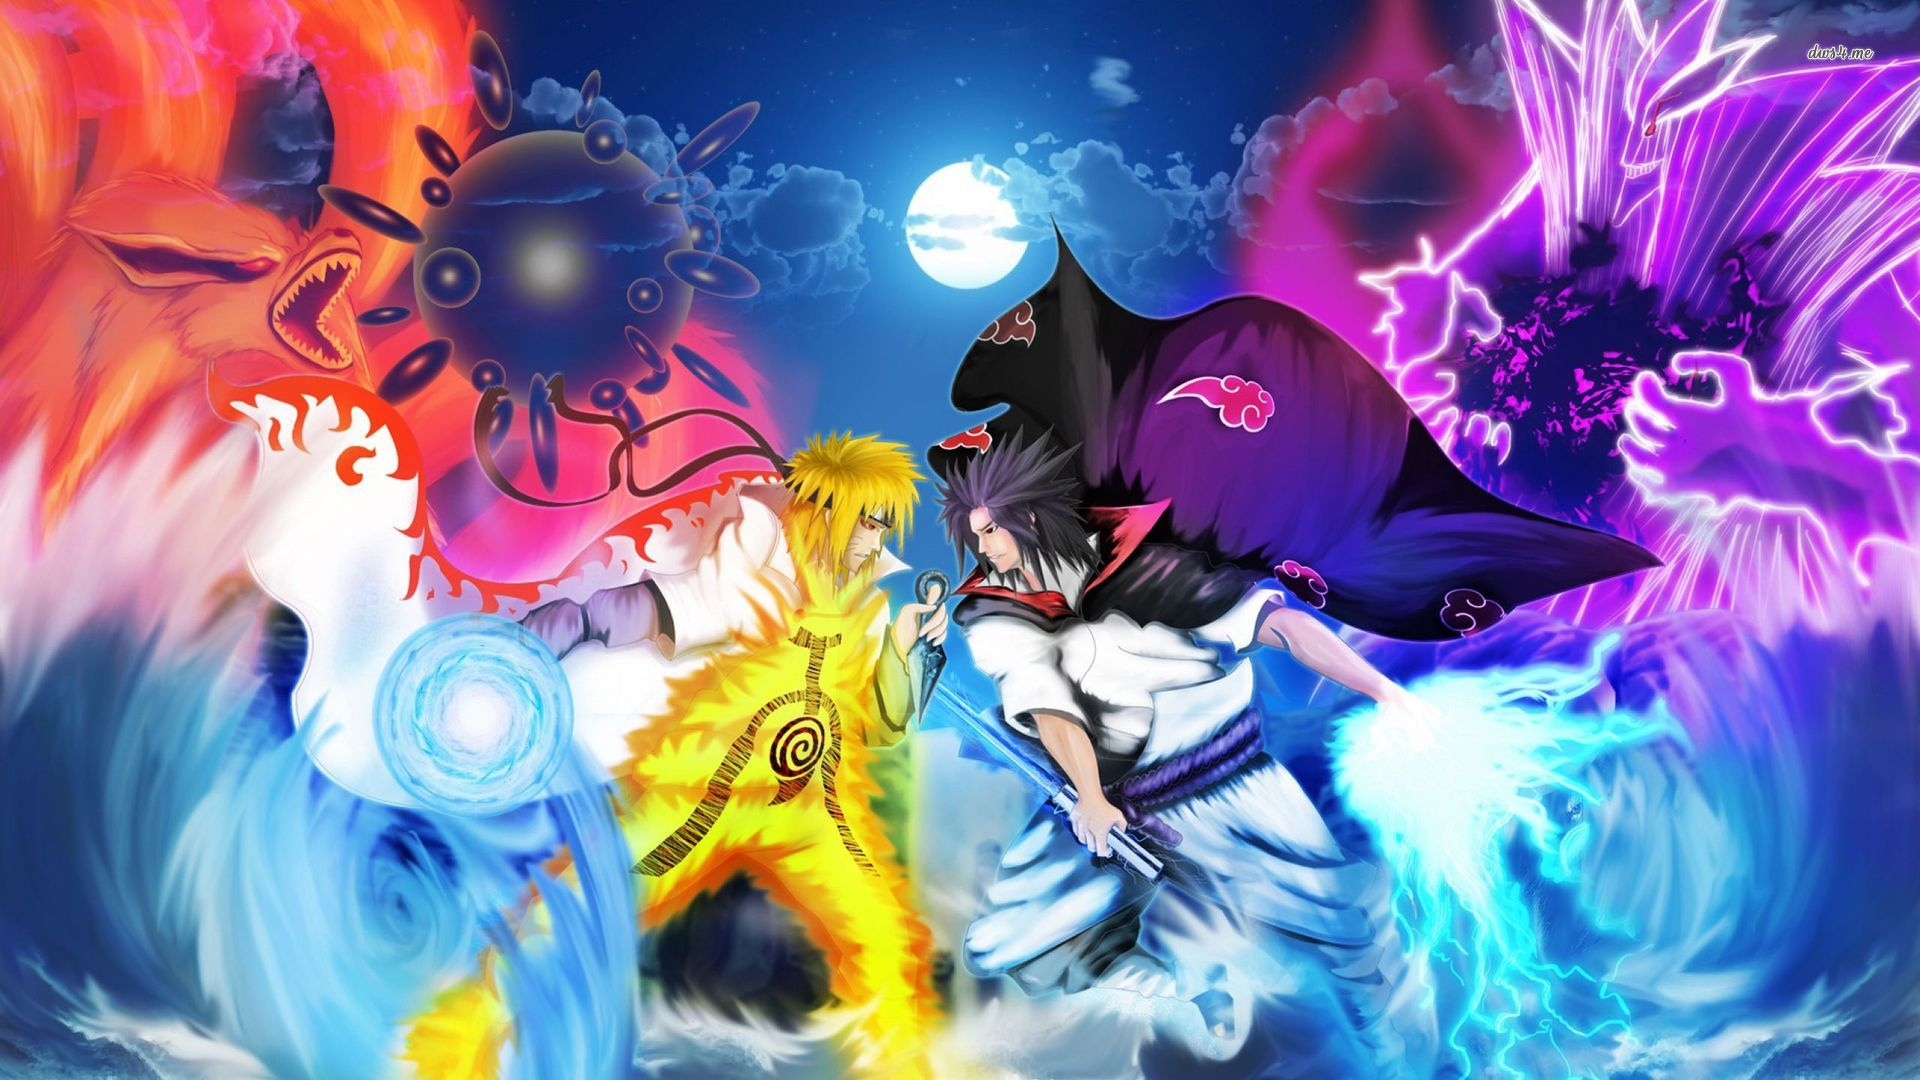 Good Wallpaper Naruto High Definition - Naruto-Vs-Sasuke-Wallpapers-desktop-wallpapers-k-high-definition-windows-mac  Gallery_845069.jpg